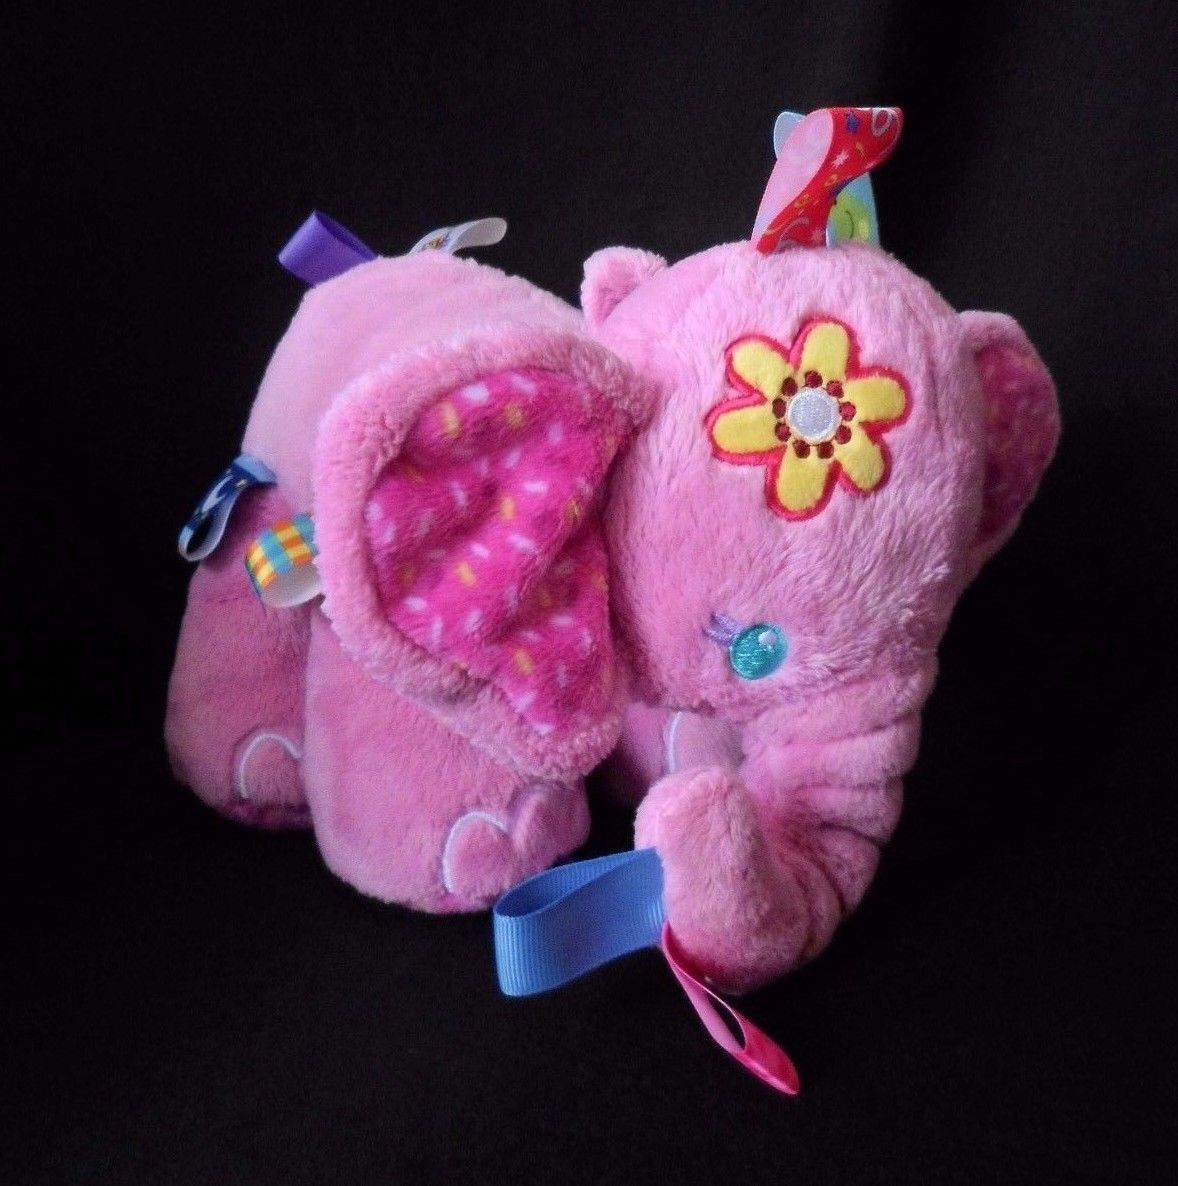 TAGGIES TAG-N-PLAY PALS PINK PLUSH ELEPHANT-BABY COMFORTER- SUPER SOFT TOY